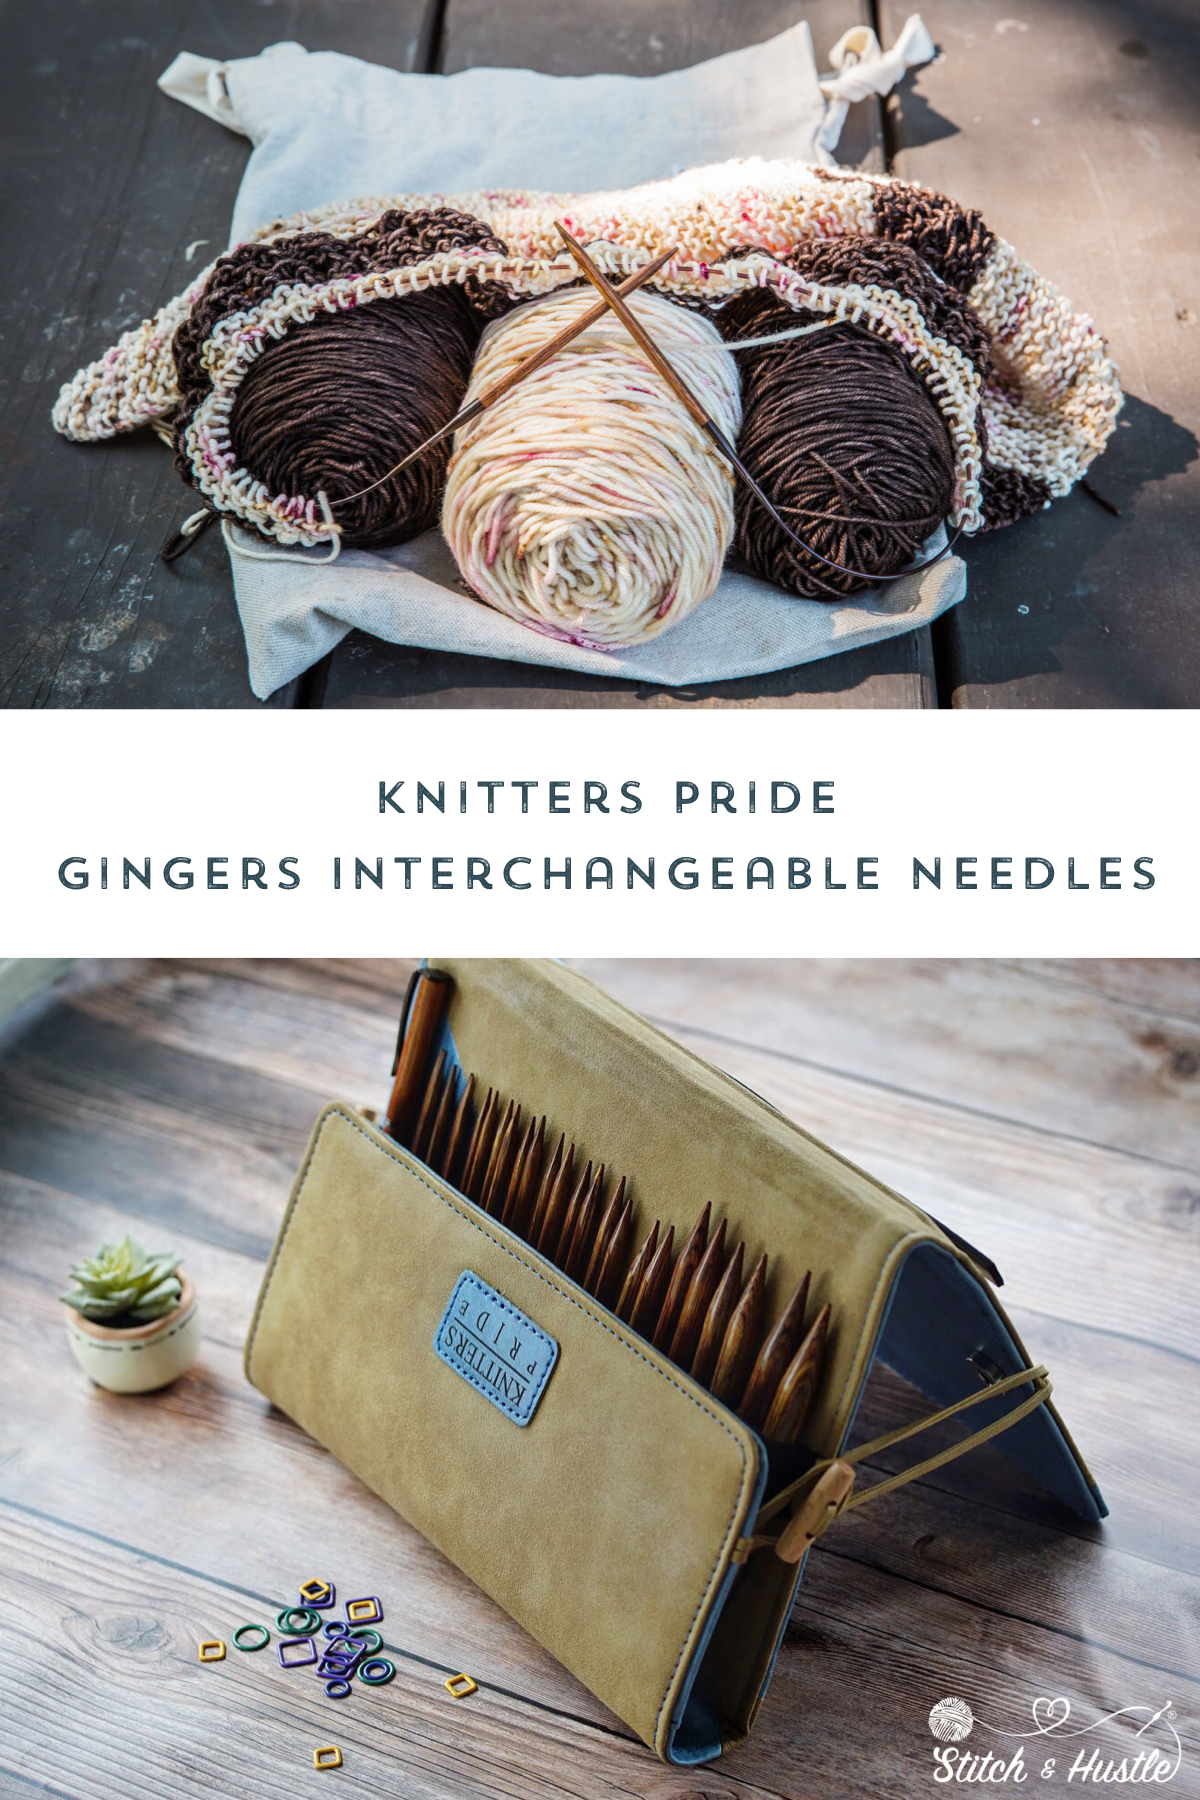 Knitters_Pride_Ginger_Interchangeable_Circular_Knitting_Needles_Review_1.jpg